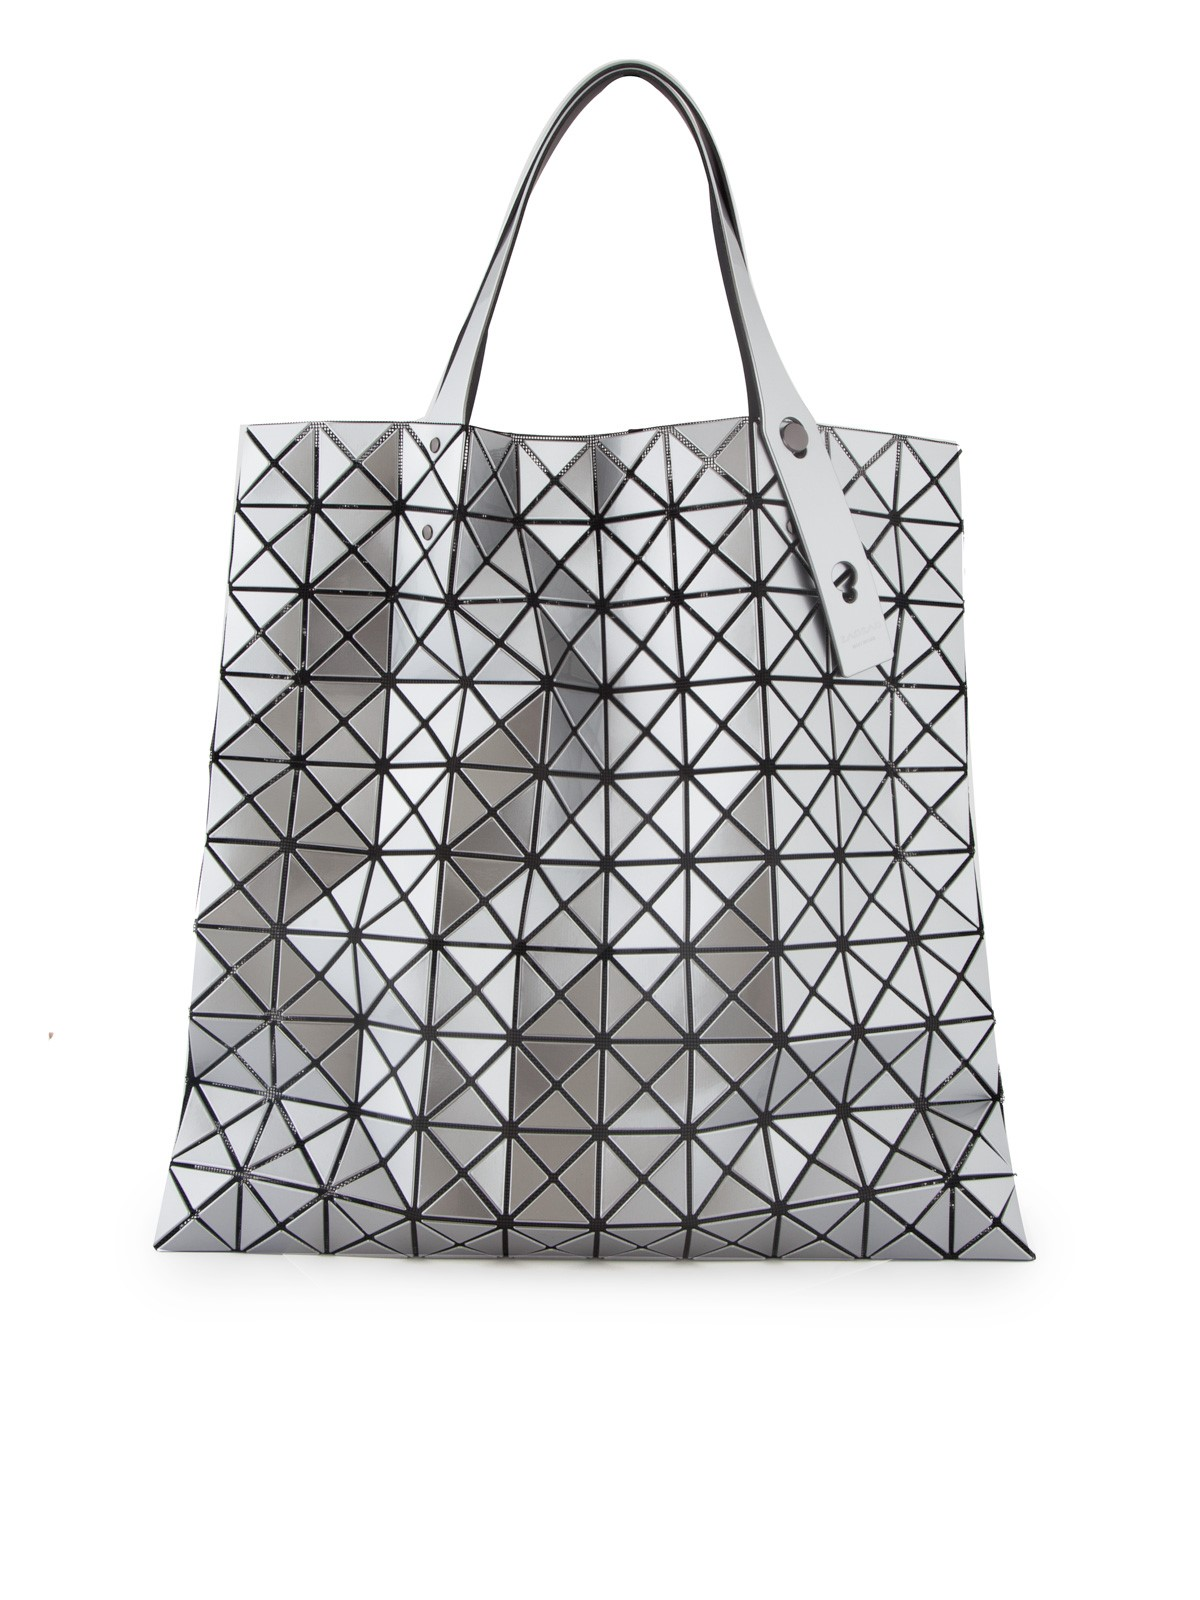 87a614faf6 bao bao issey miyake PRISM TOTE BAG available on montiboutique.com ...